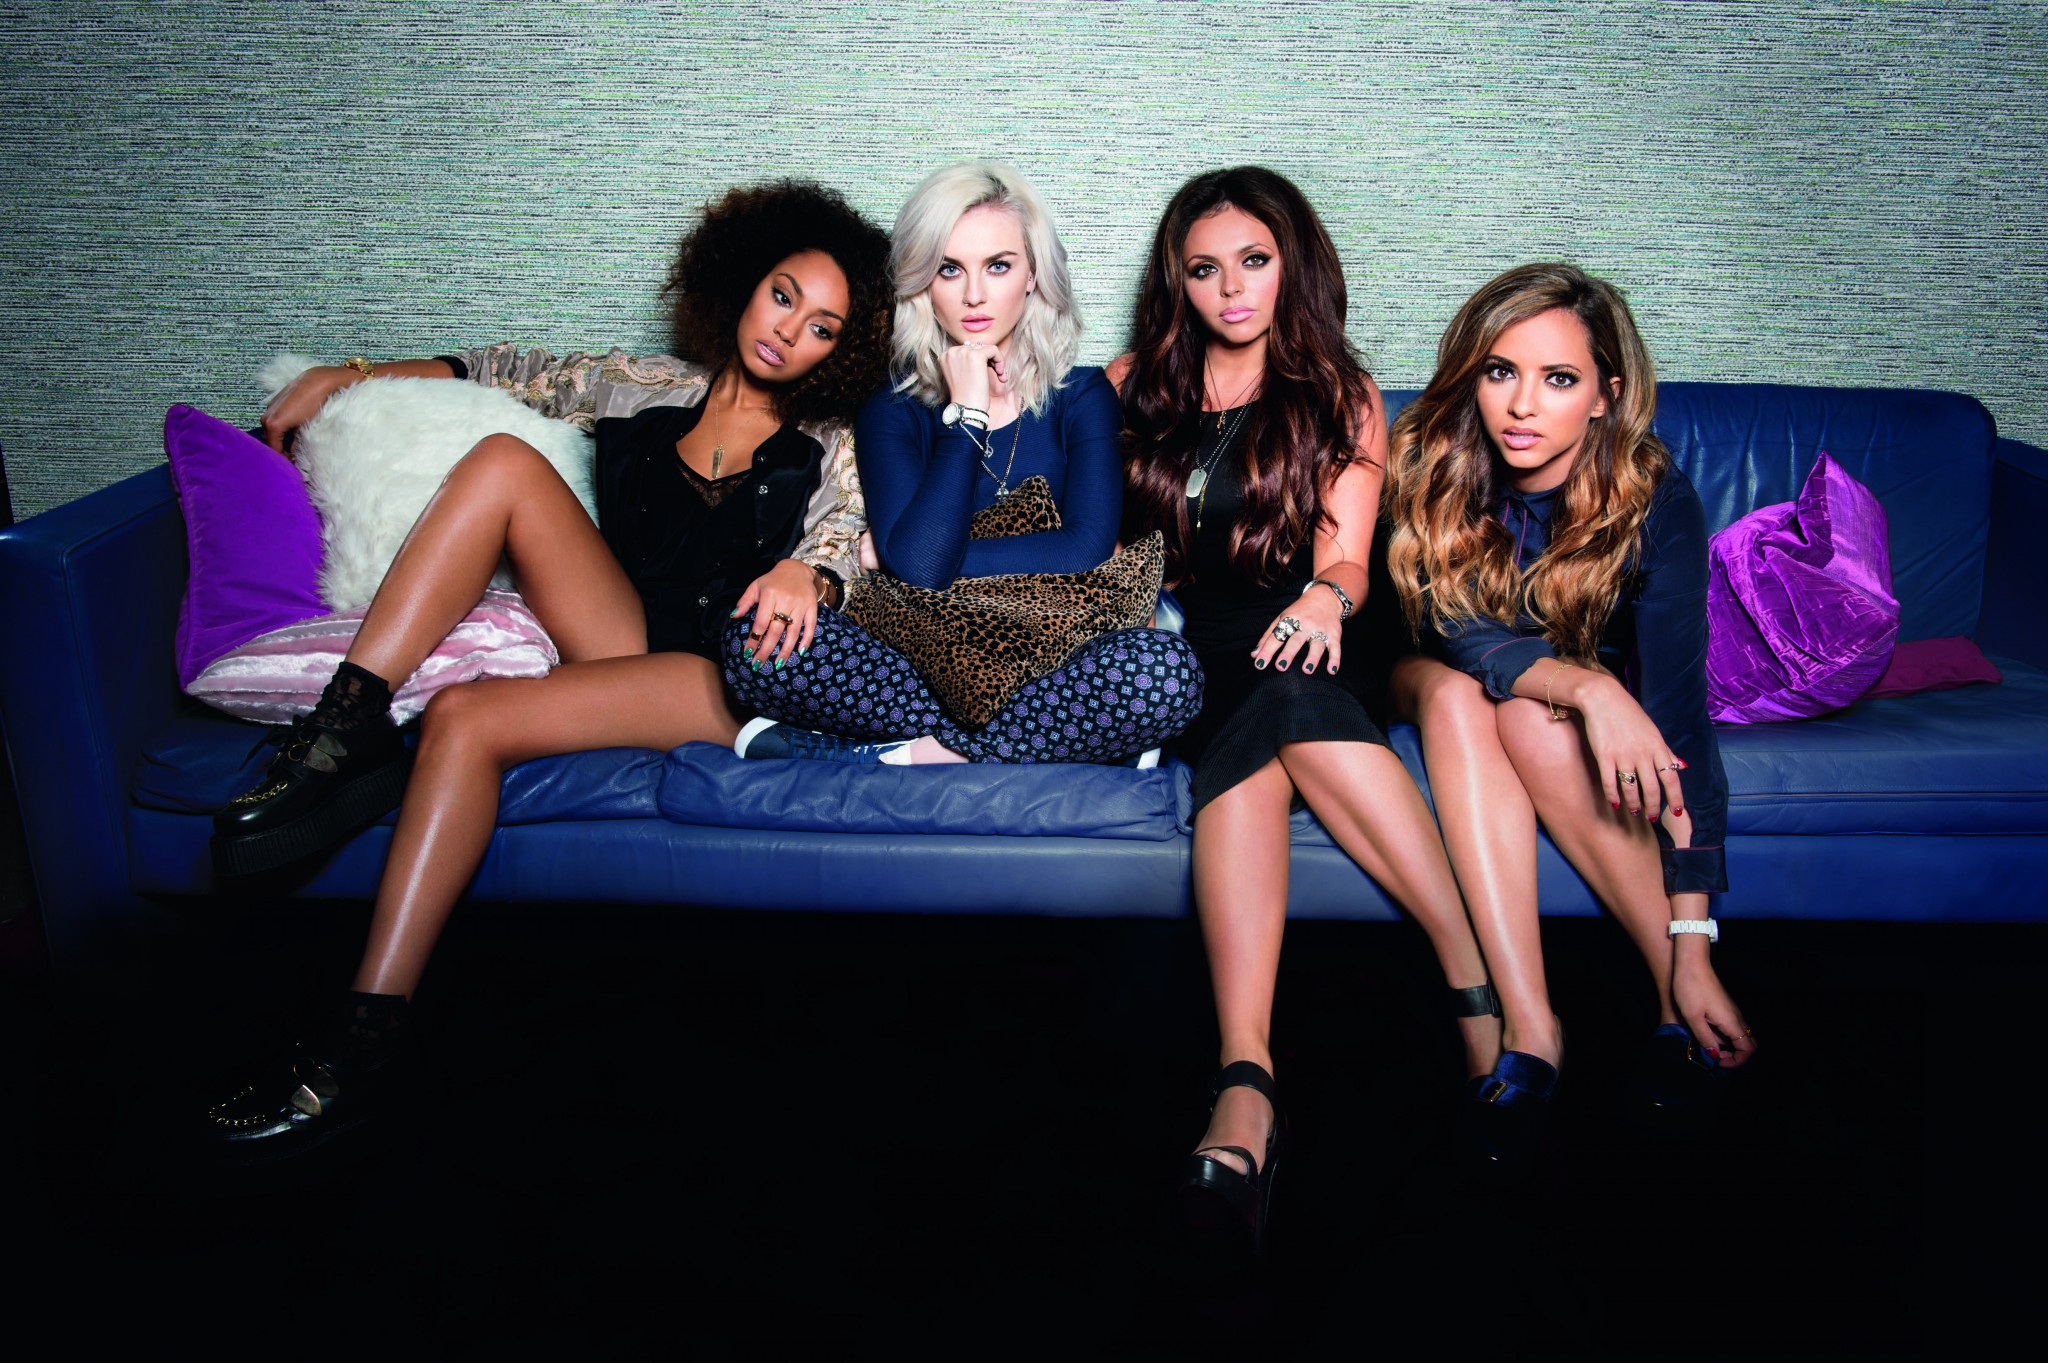 contest win little mixs deluxe edition of the album